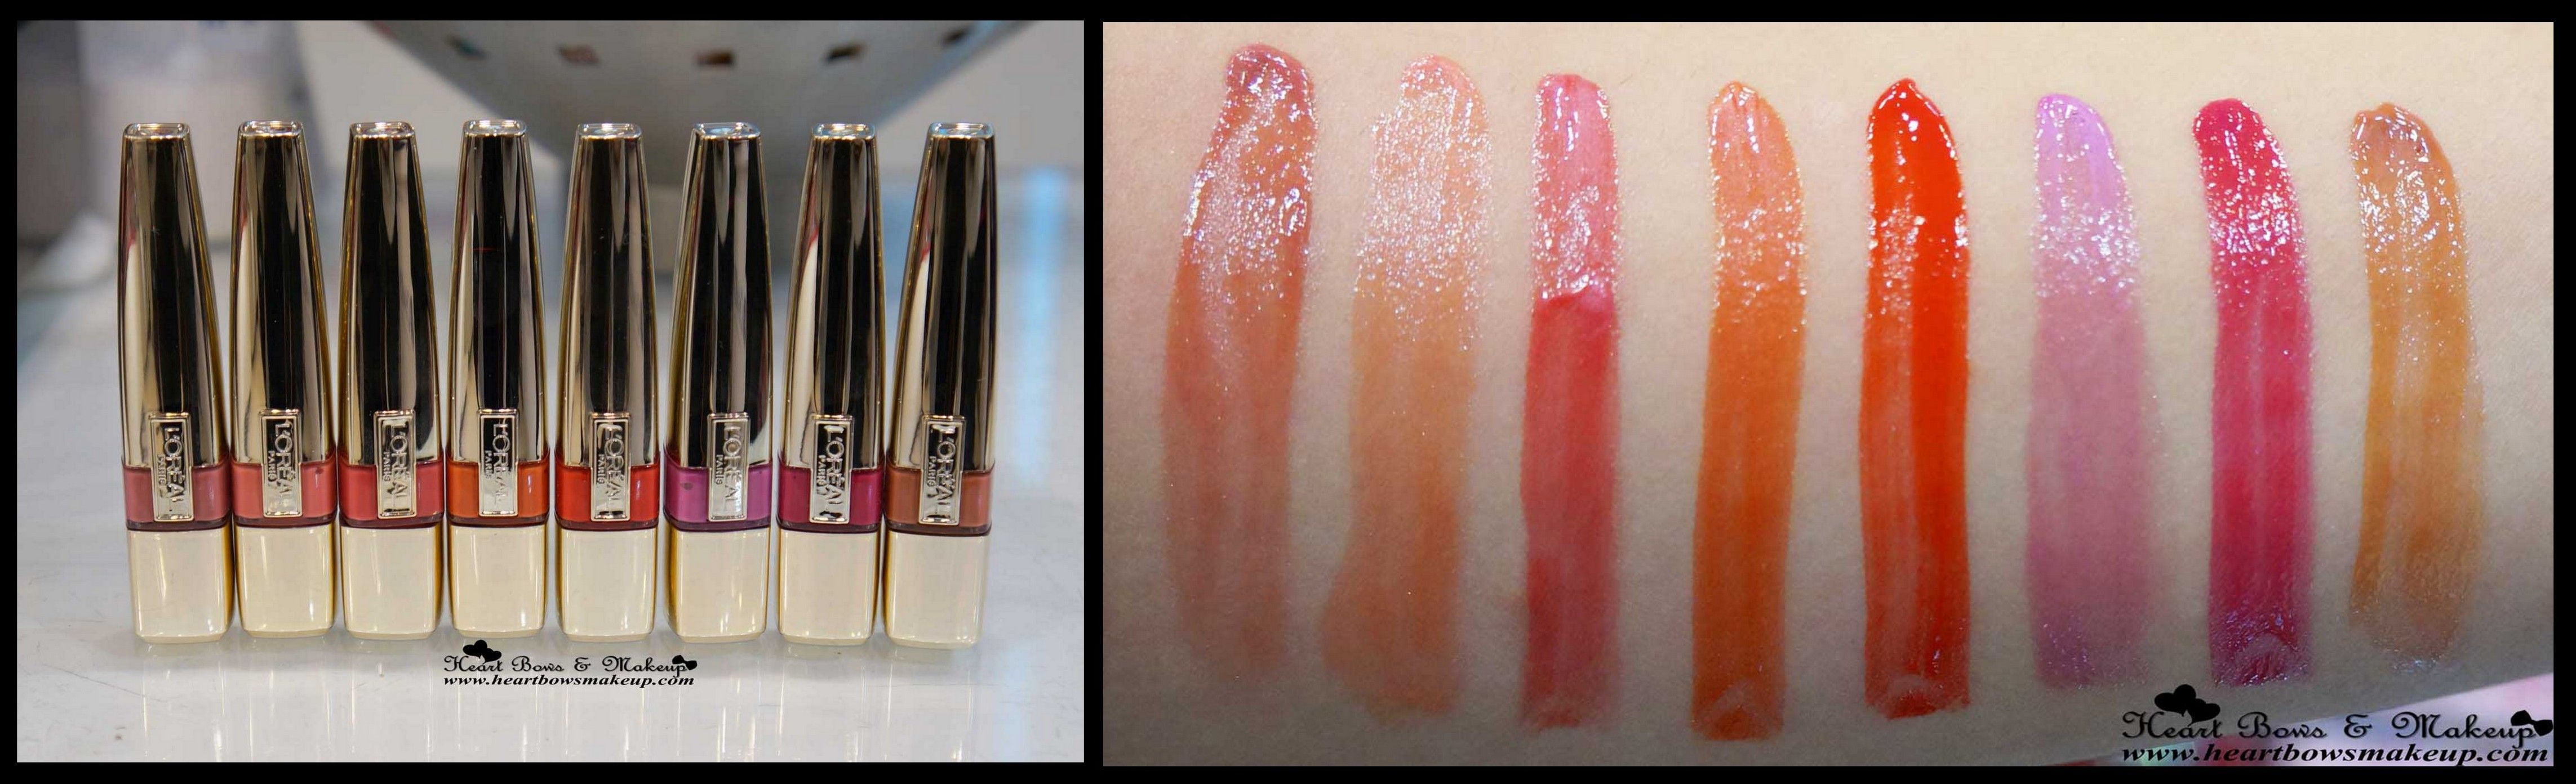 Loreal color caresse by color rich lipstick - All L Oreal Caresse Shine Lip Color Swatches All L Oreal Wet Shine